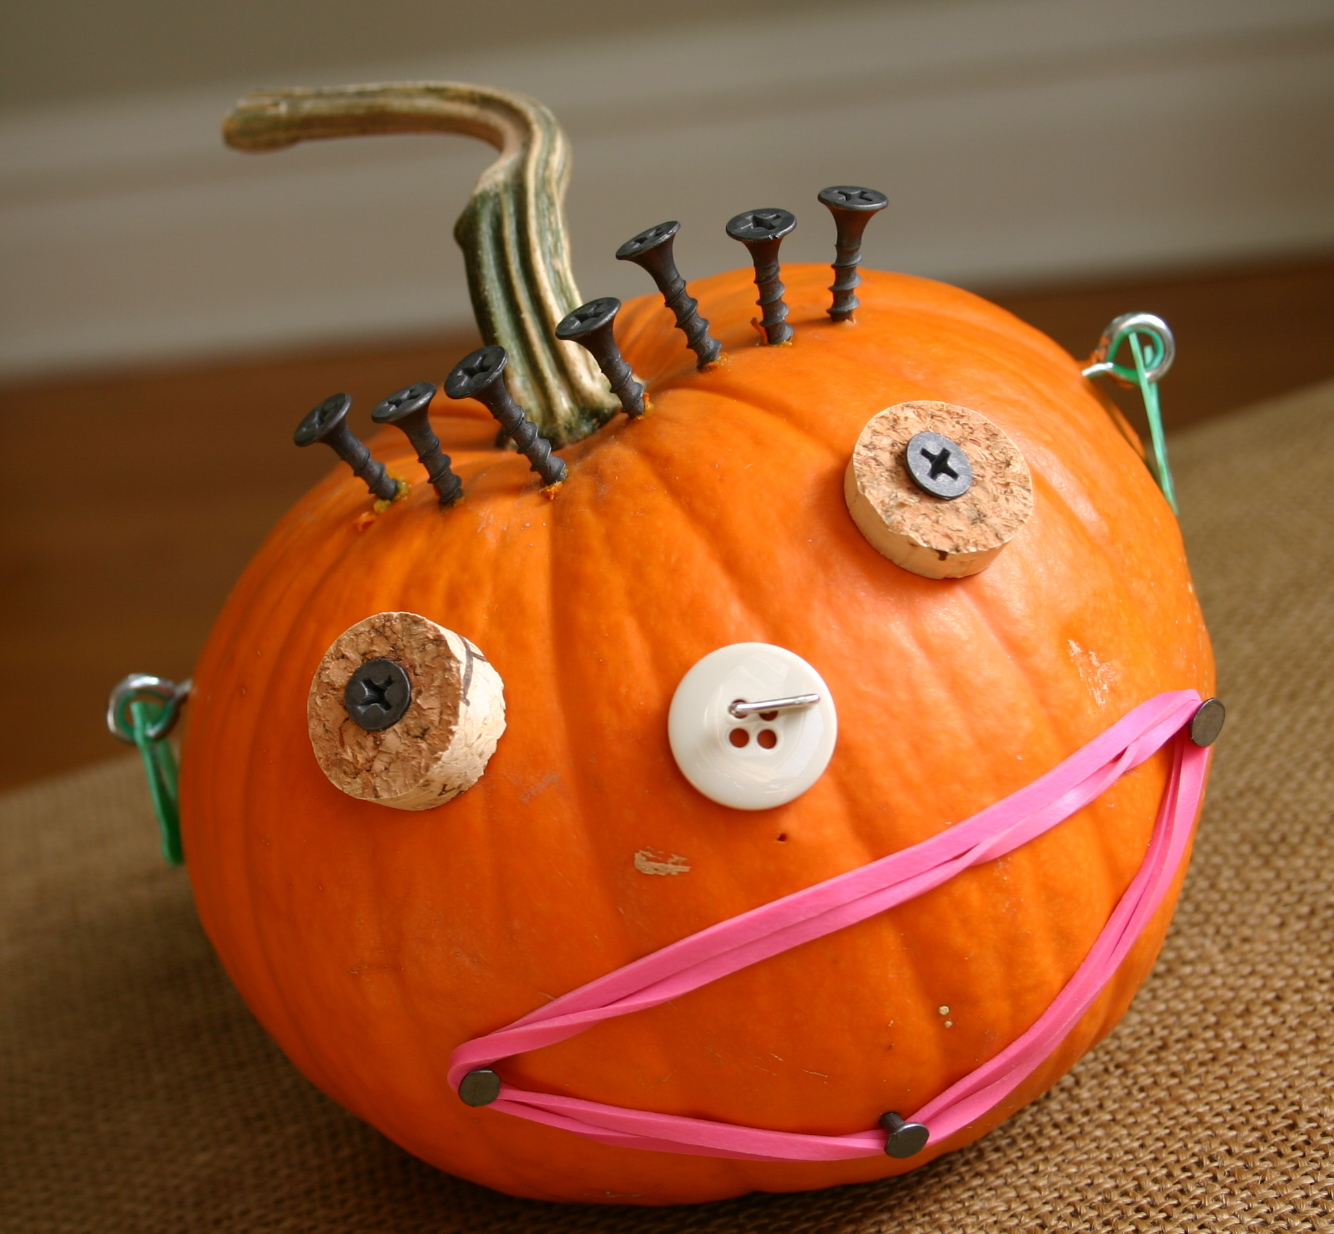 This project is great for little ones - there's no carving involved. A small pumpkin is given a face with the use of screws, buttons, slices of cork, rubber bands and plastic bread bag clips.